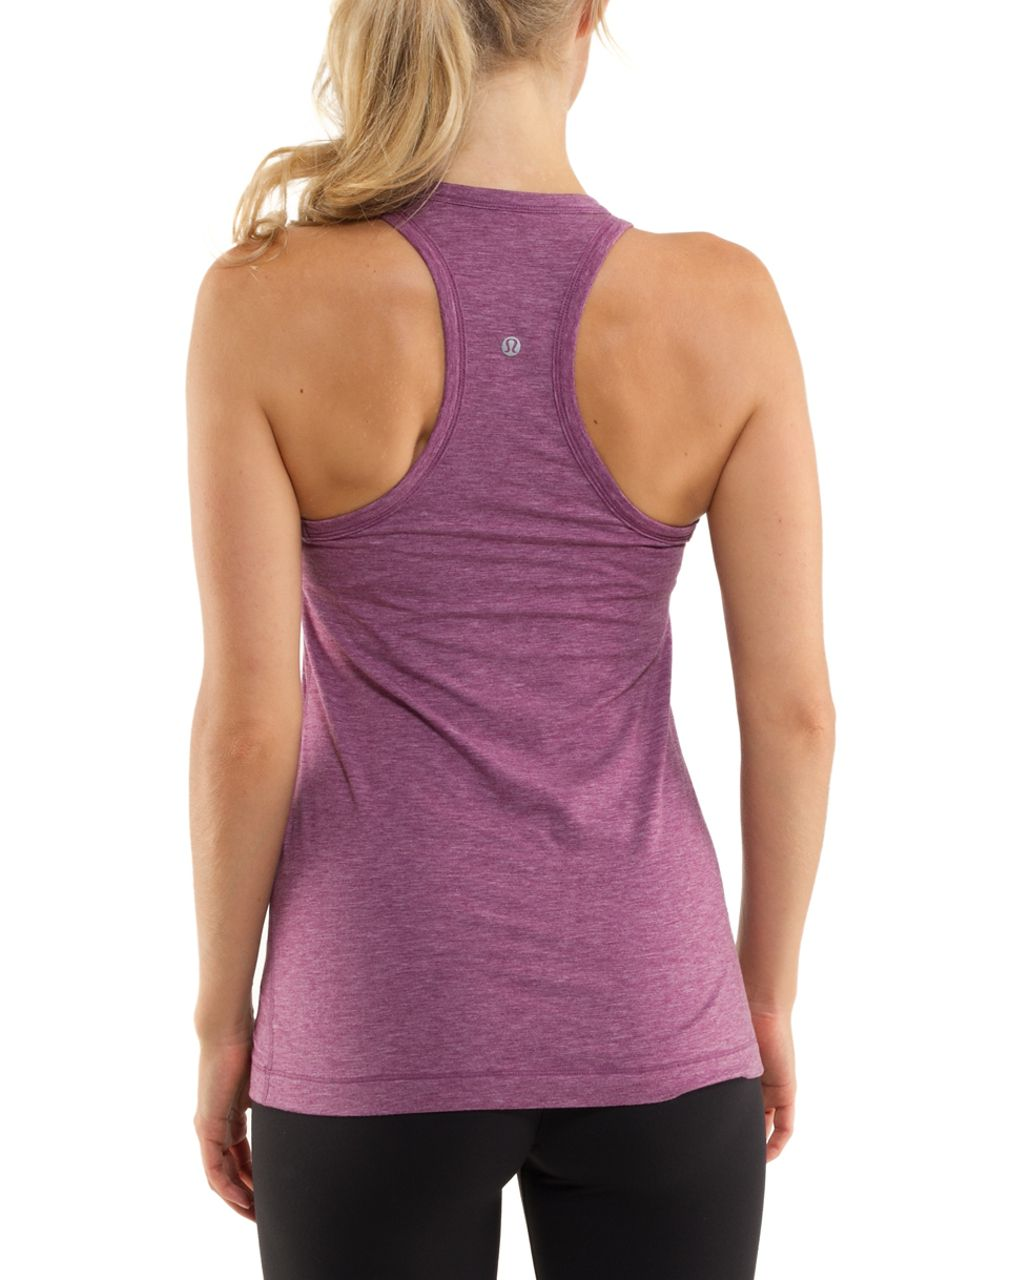 Lululemon Modern Racer Tank - Heathered Dew Berry